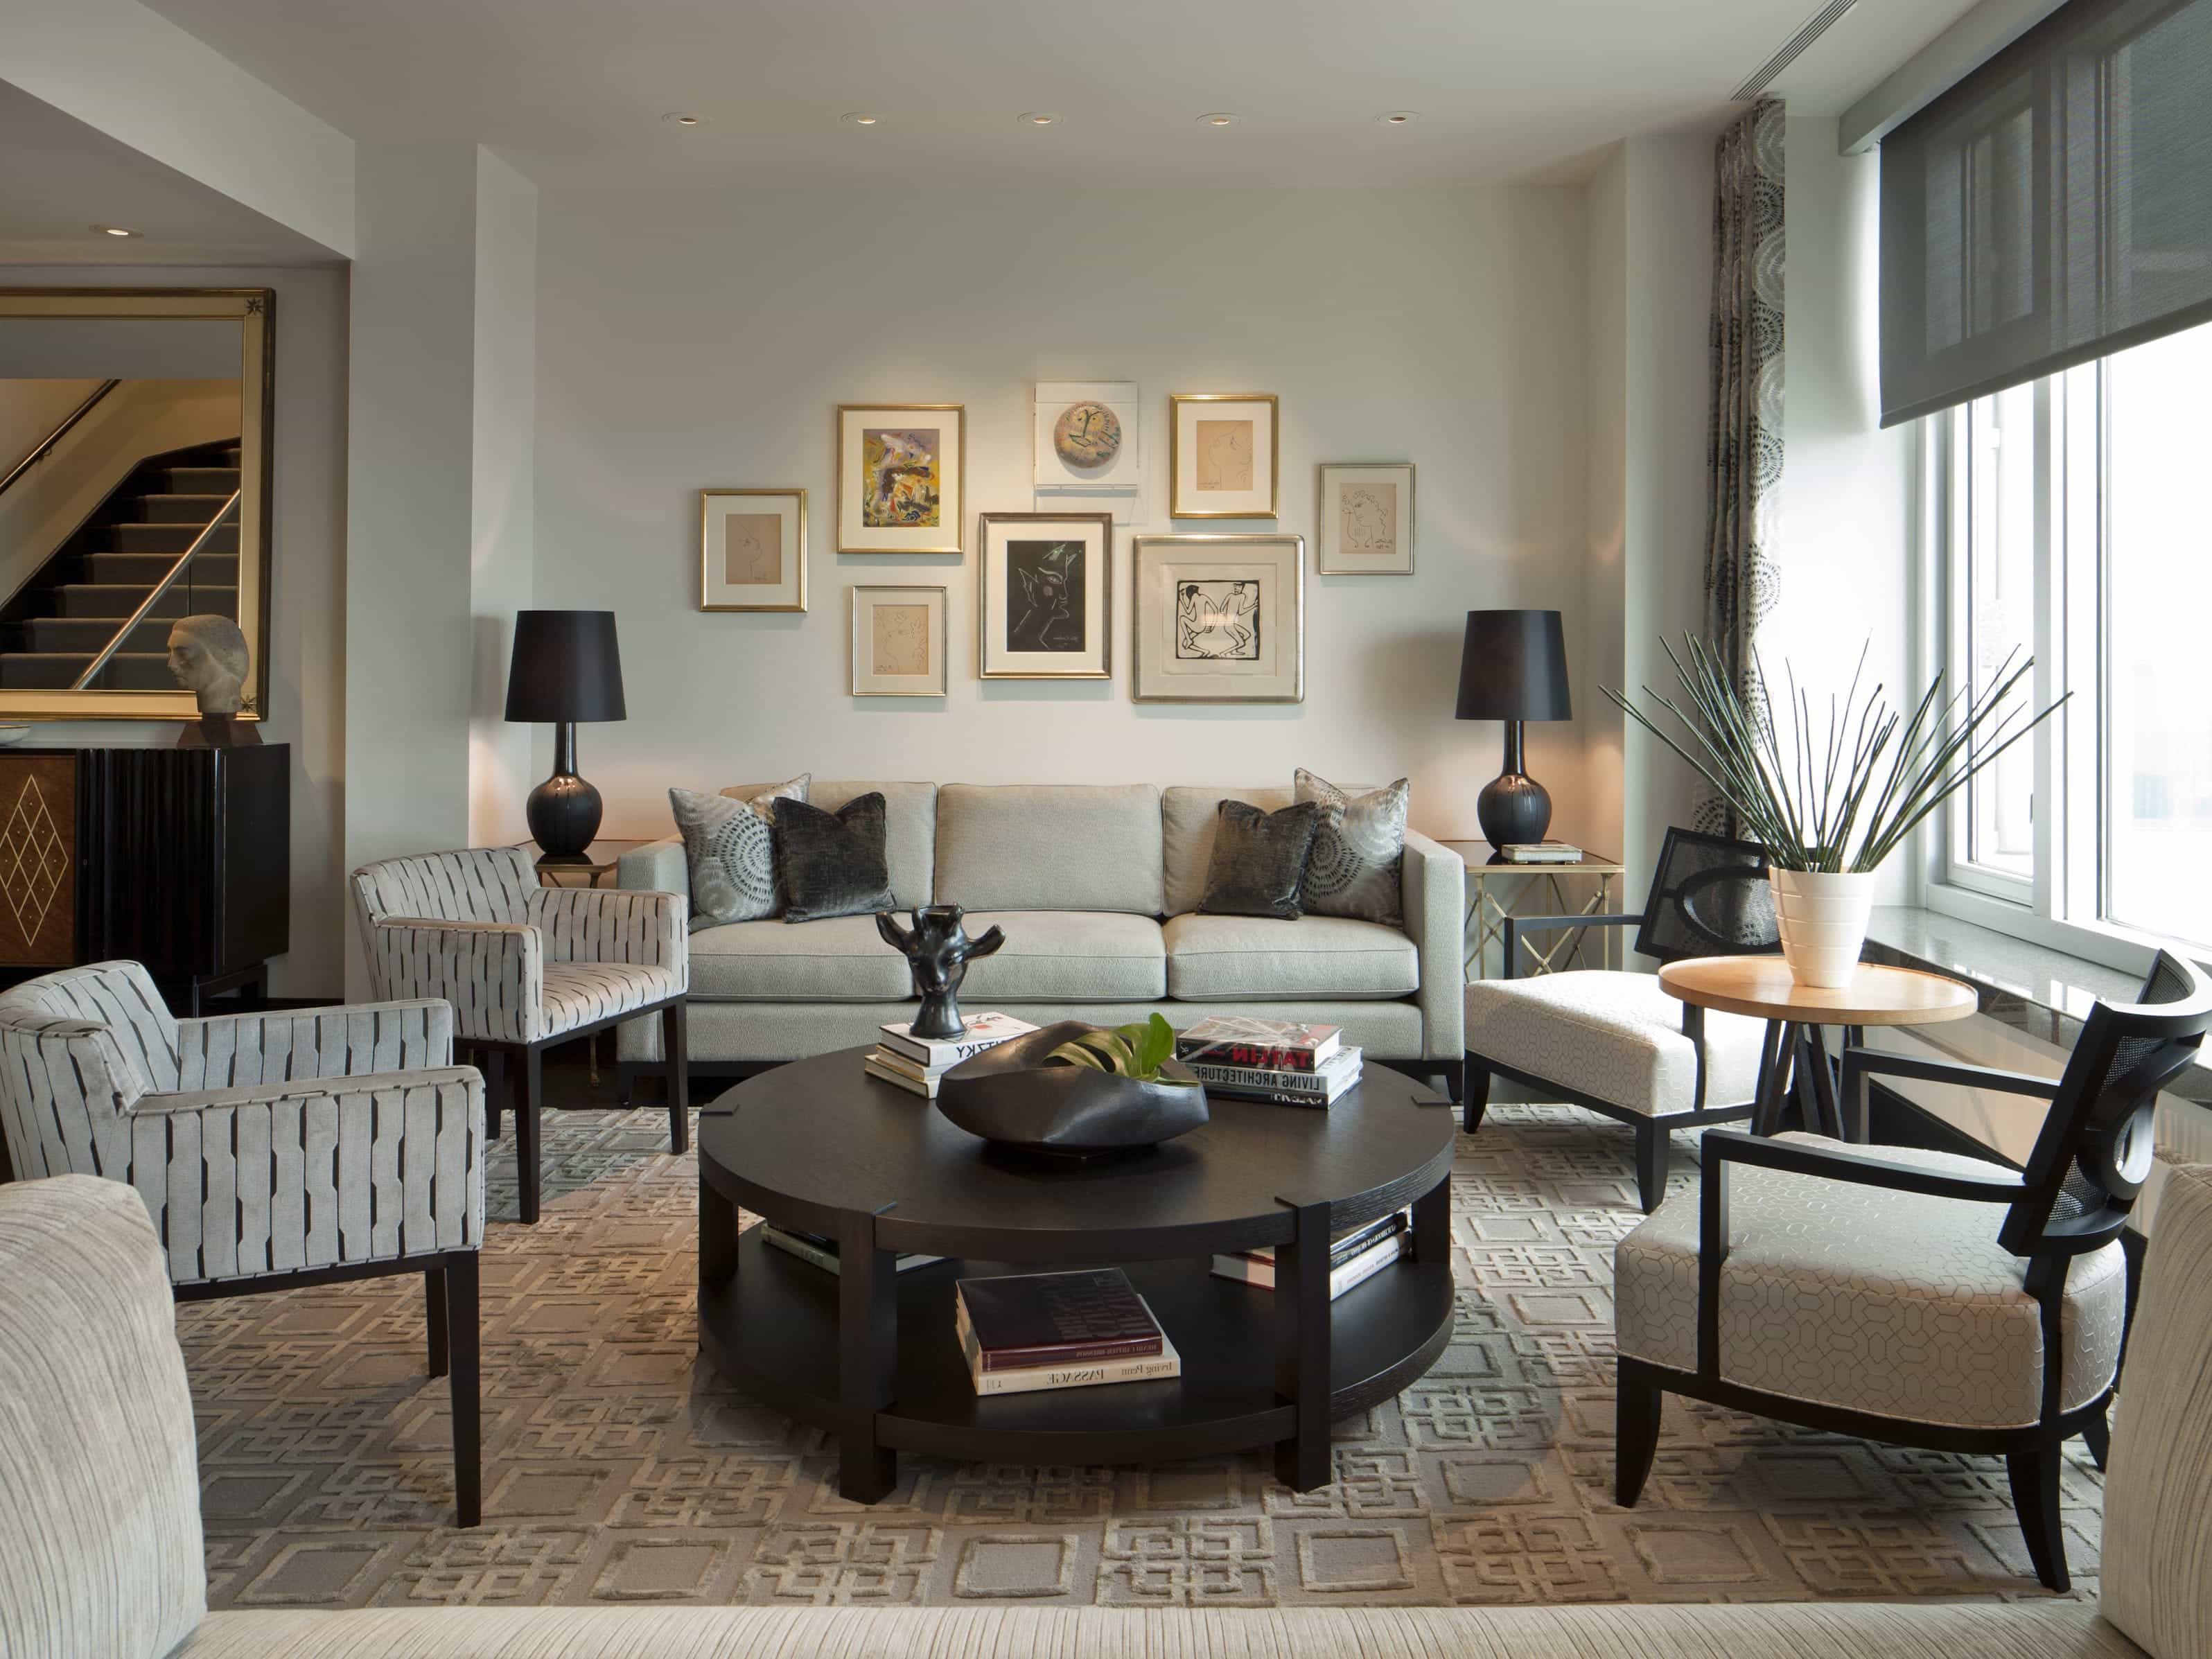 Gray Contemporary Sitting Room With Round Black Coffee Table (Image 16 of 32)